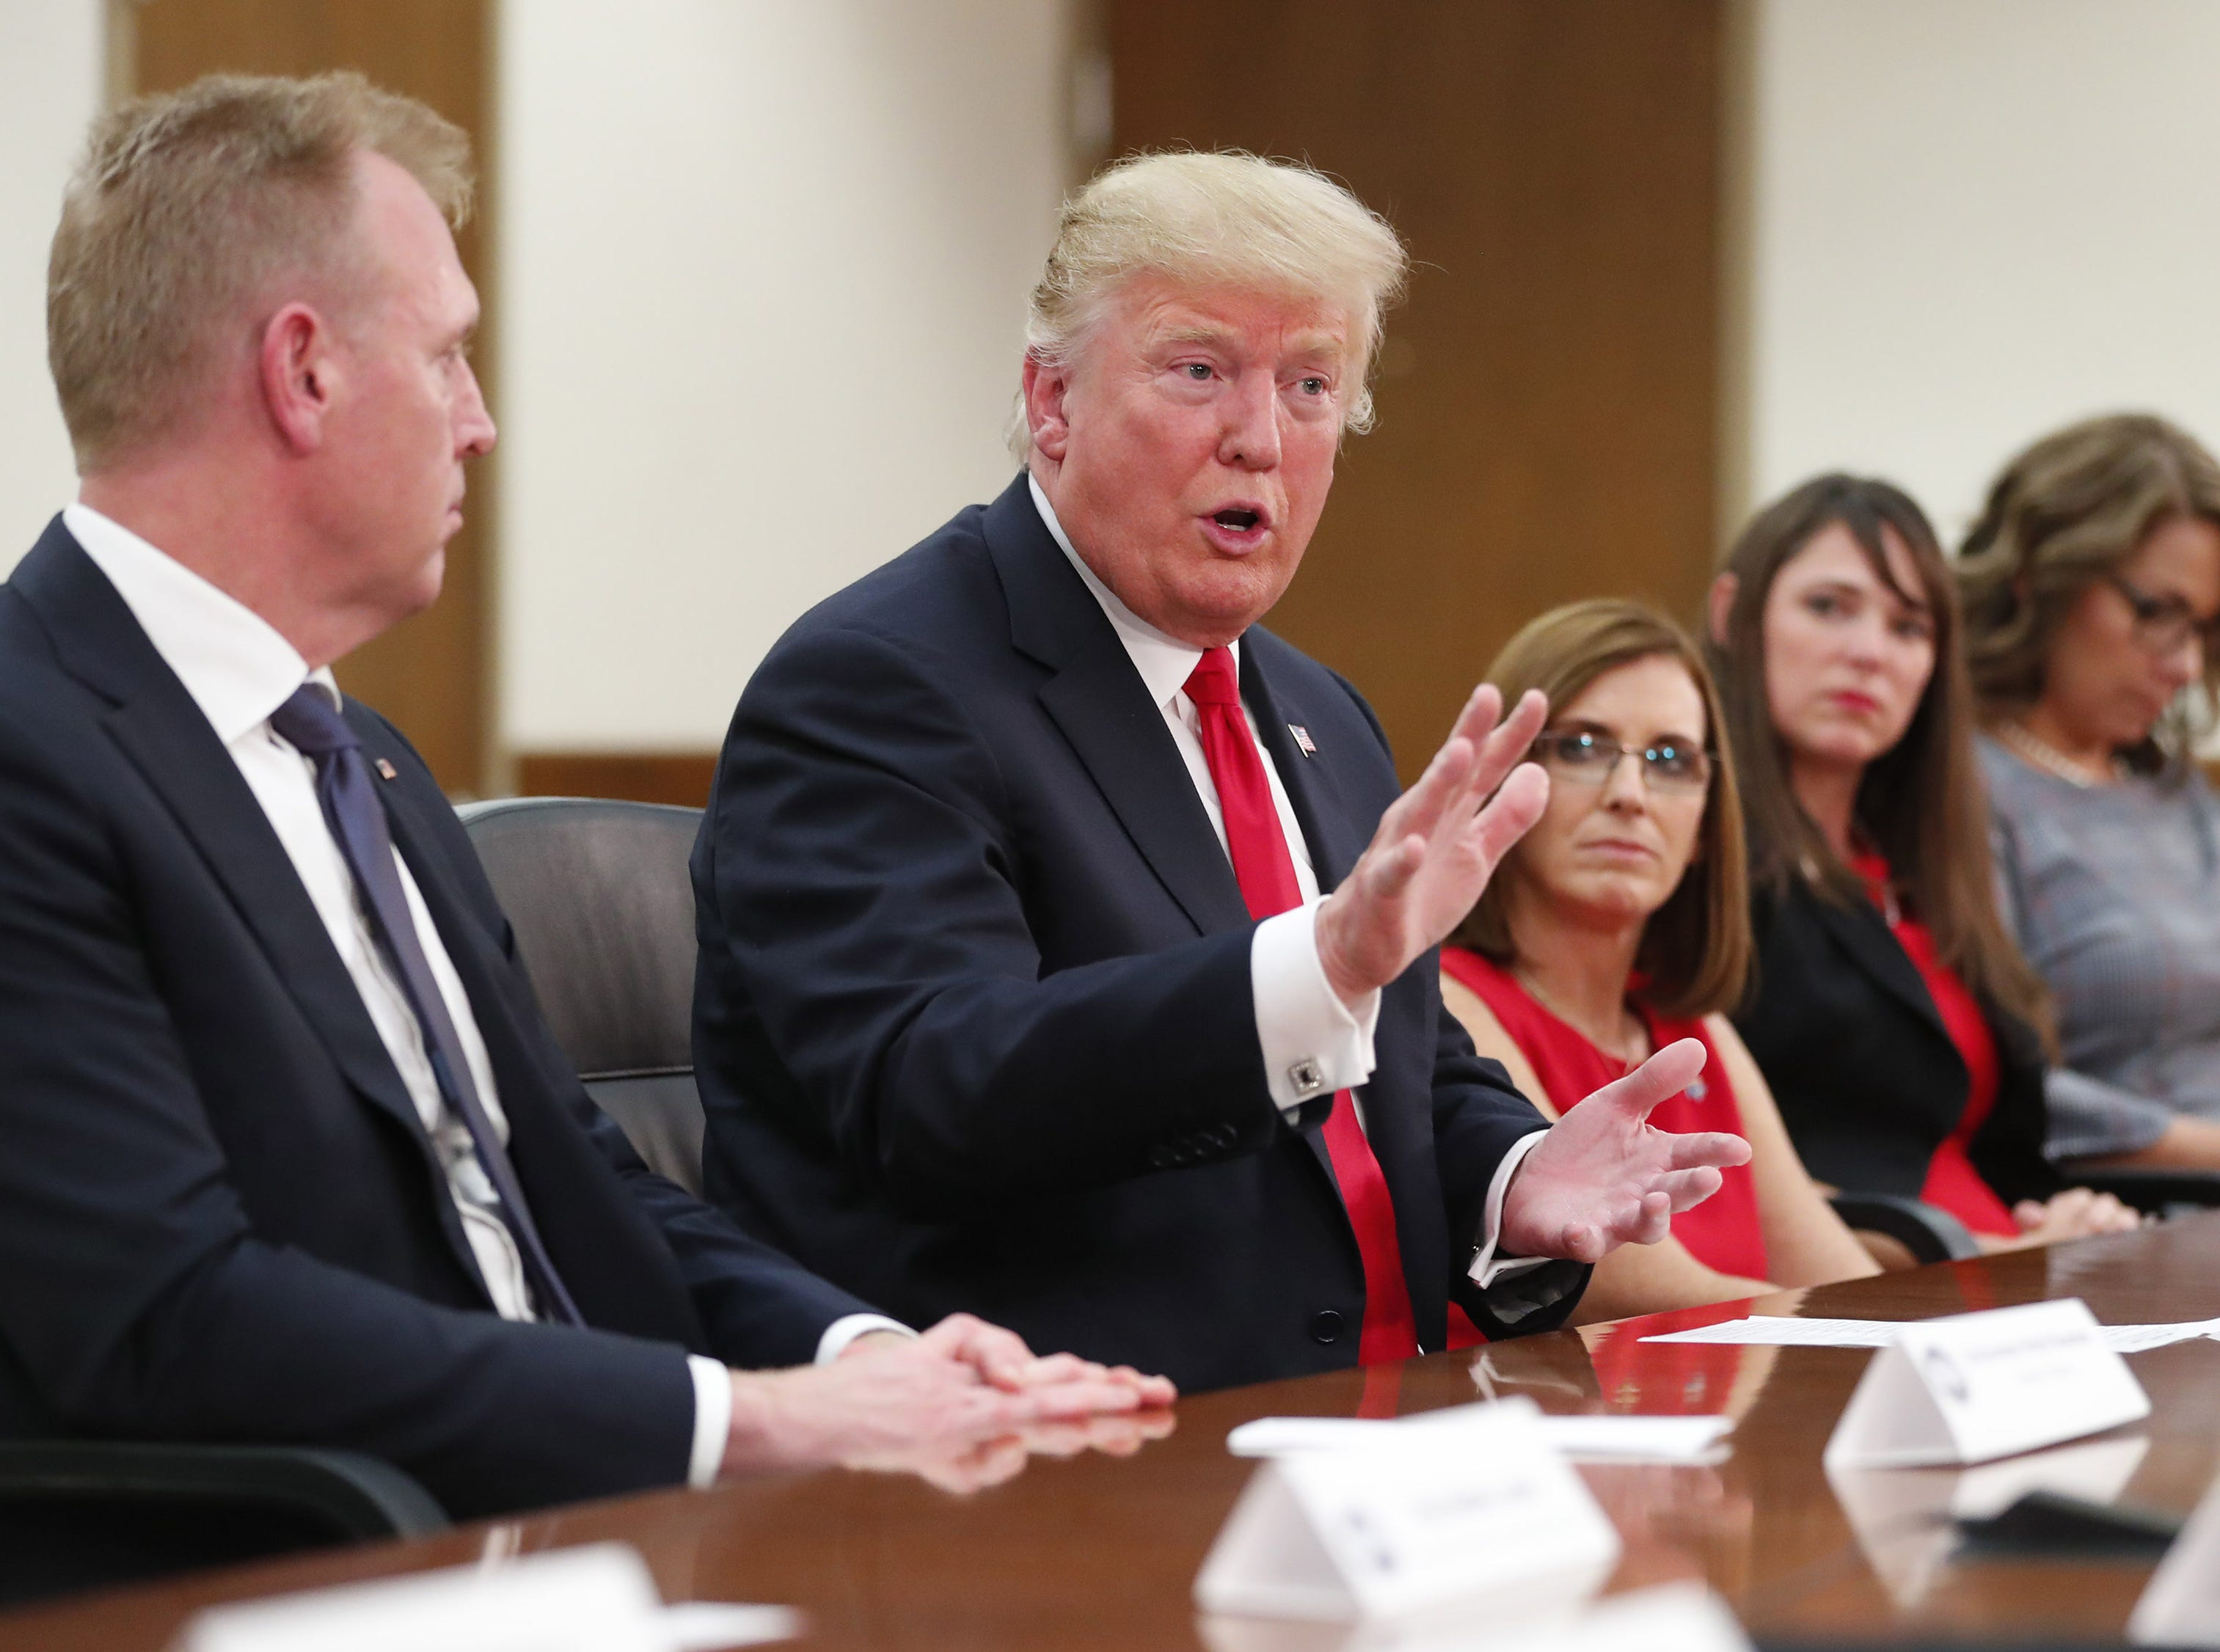 President Donald Trump answers a question on immigration during a round-table discussion at Luke Air Force Base in Glendale on Oct. 19, 2018.